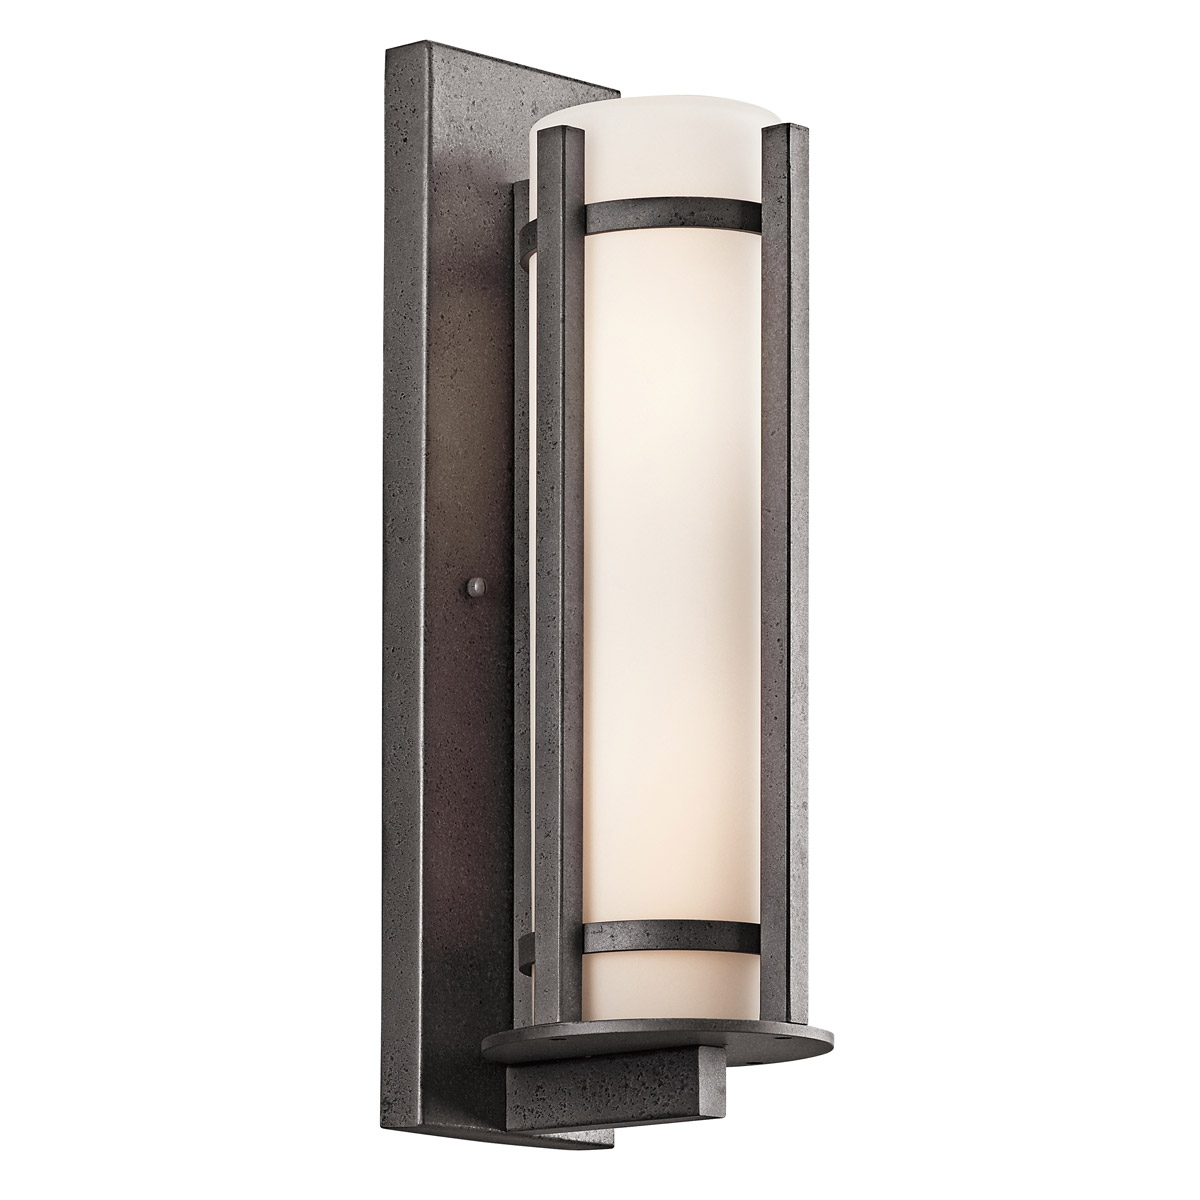 Image of: Image of Outdoor Wall Sconce